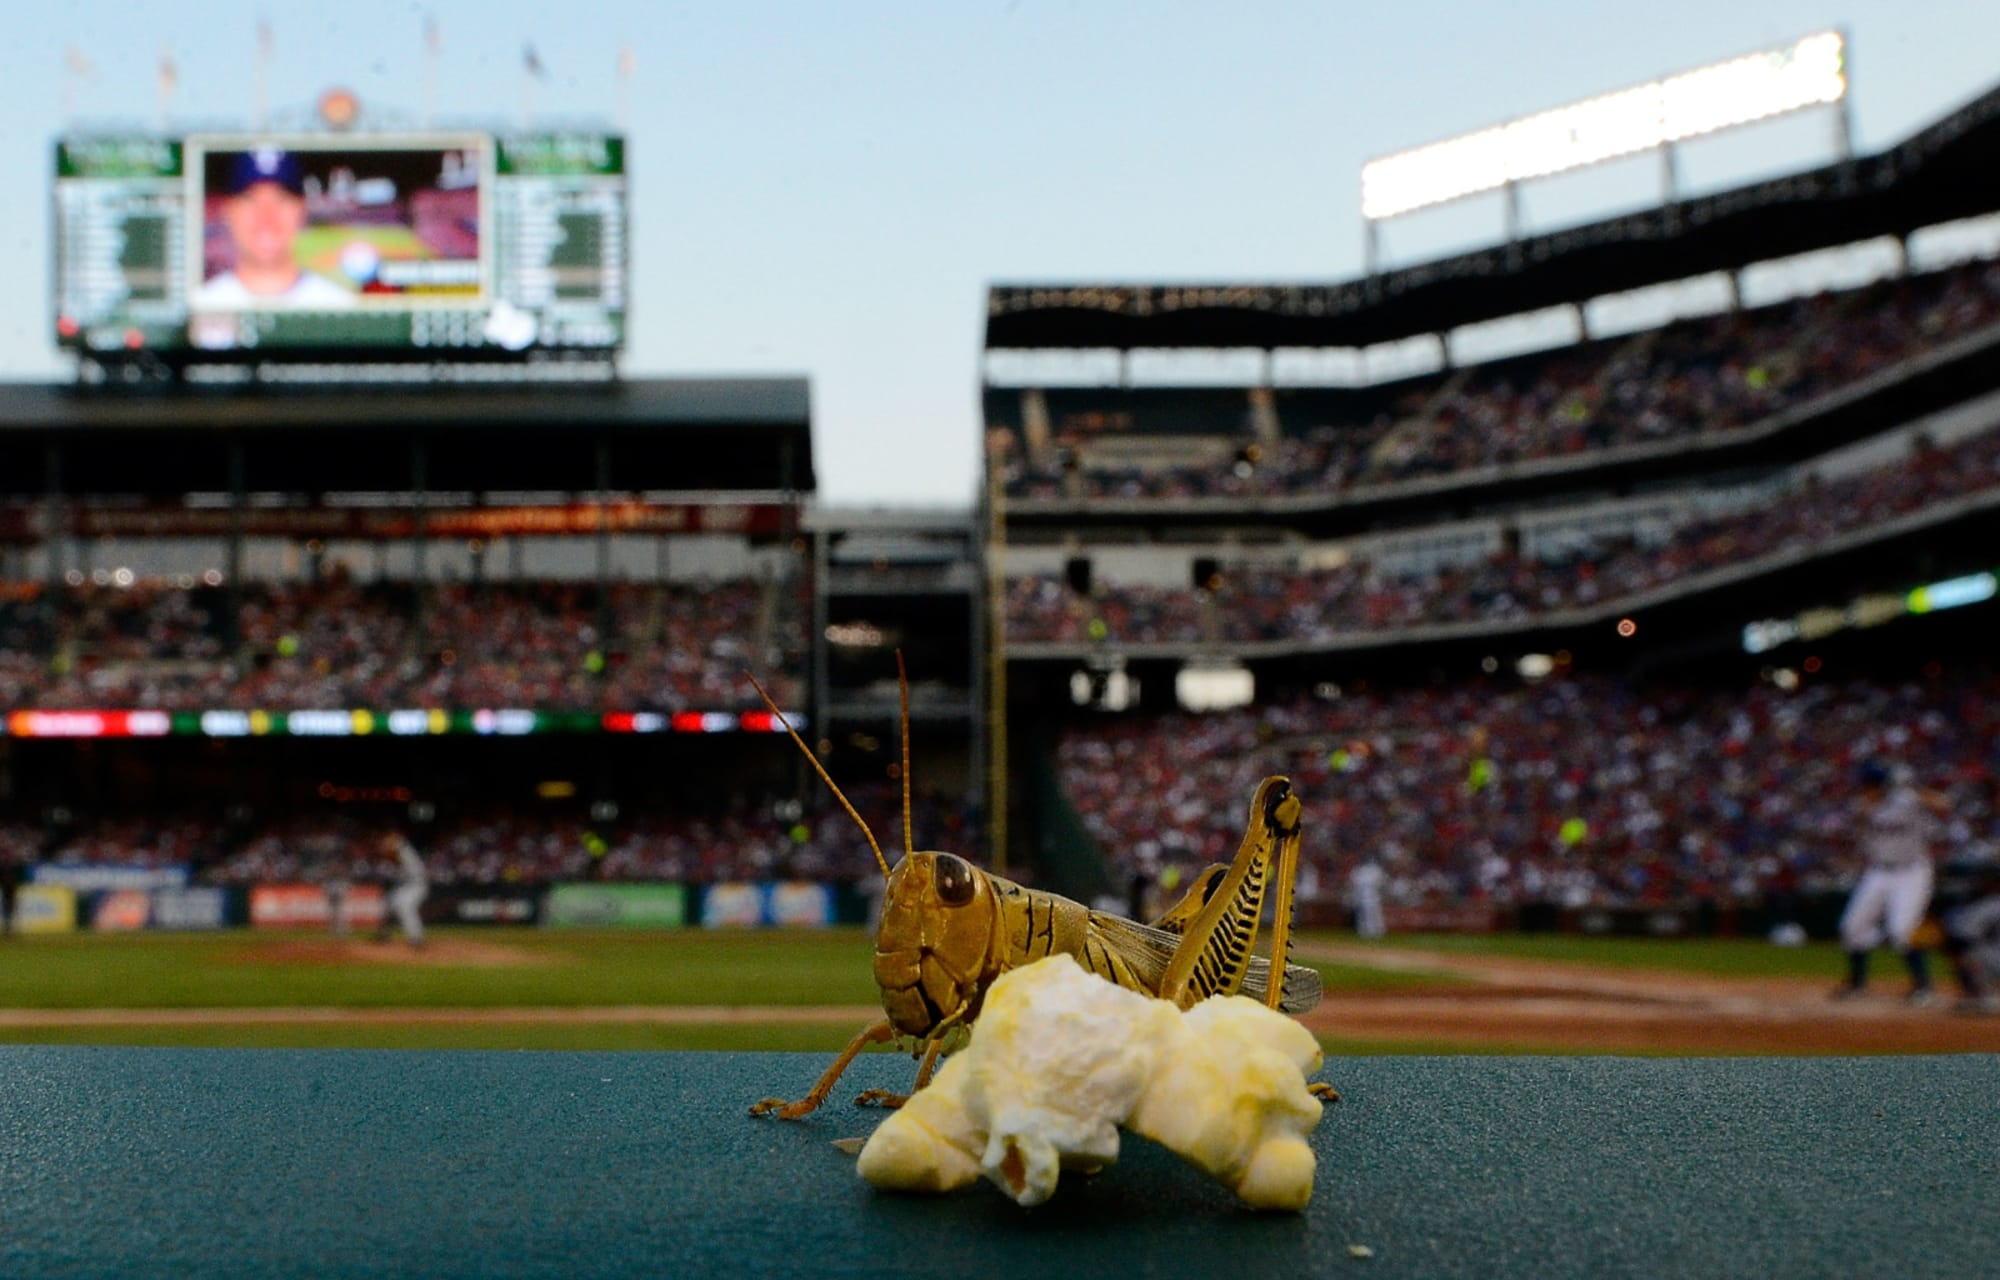 Detroit Tigers: When Baseballs and Food Collide